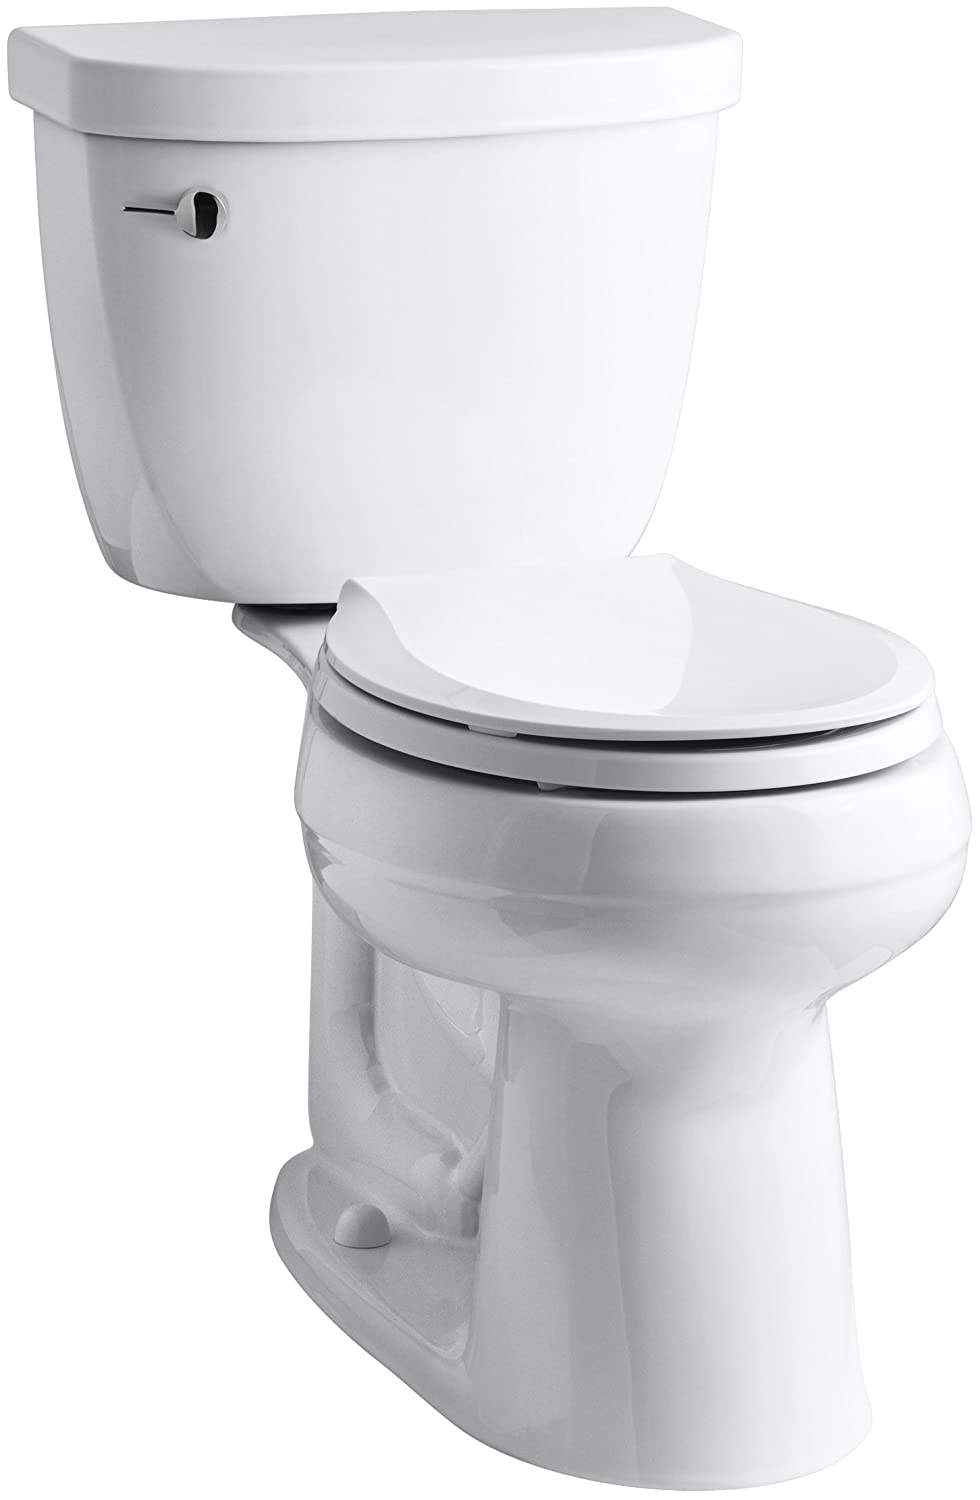 KOHLER K-3851-0 Cimarron Comfort Height Two-Piece Round-Front 1.28 GPF Toilet with Aqua Piston Flush Technology